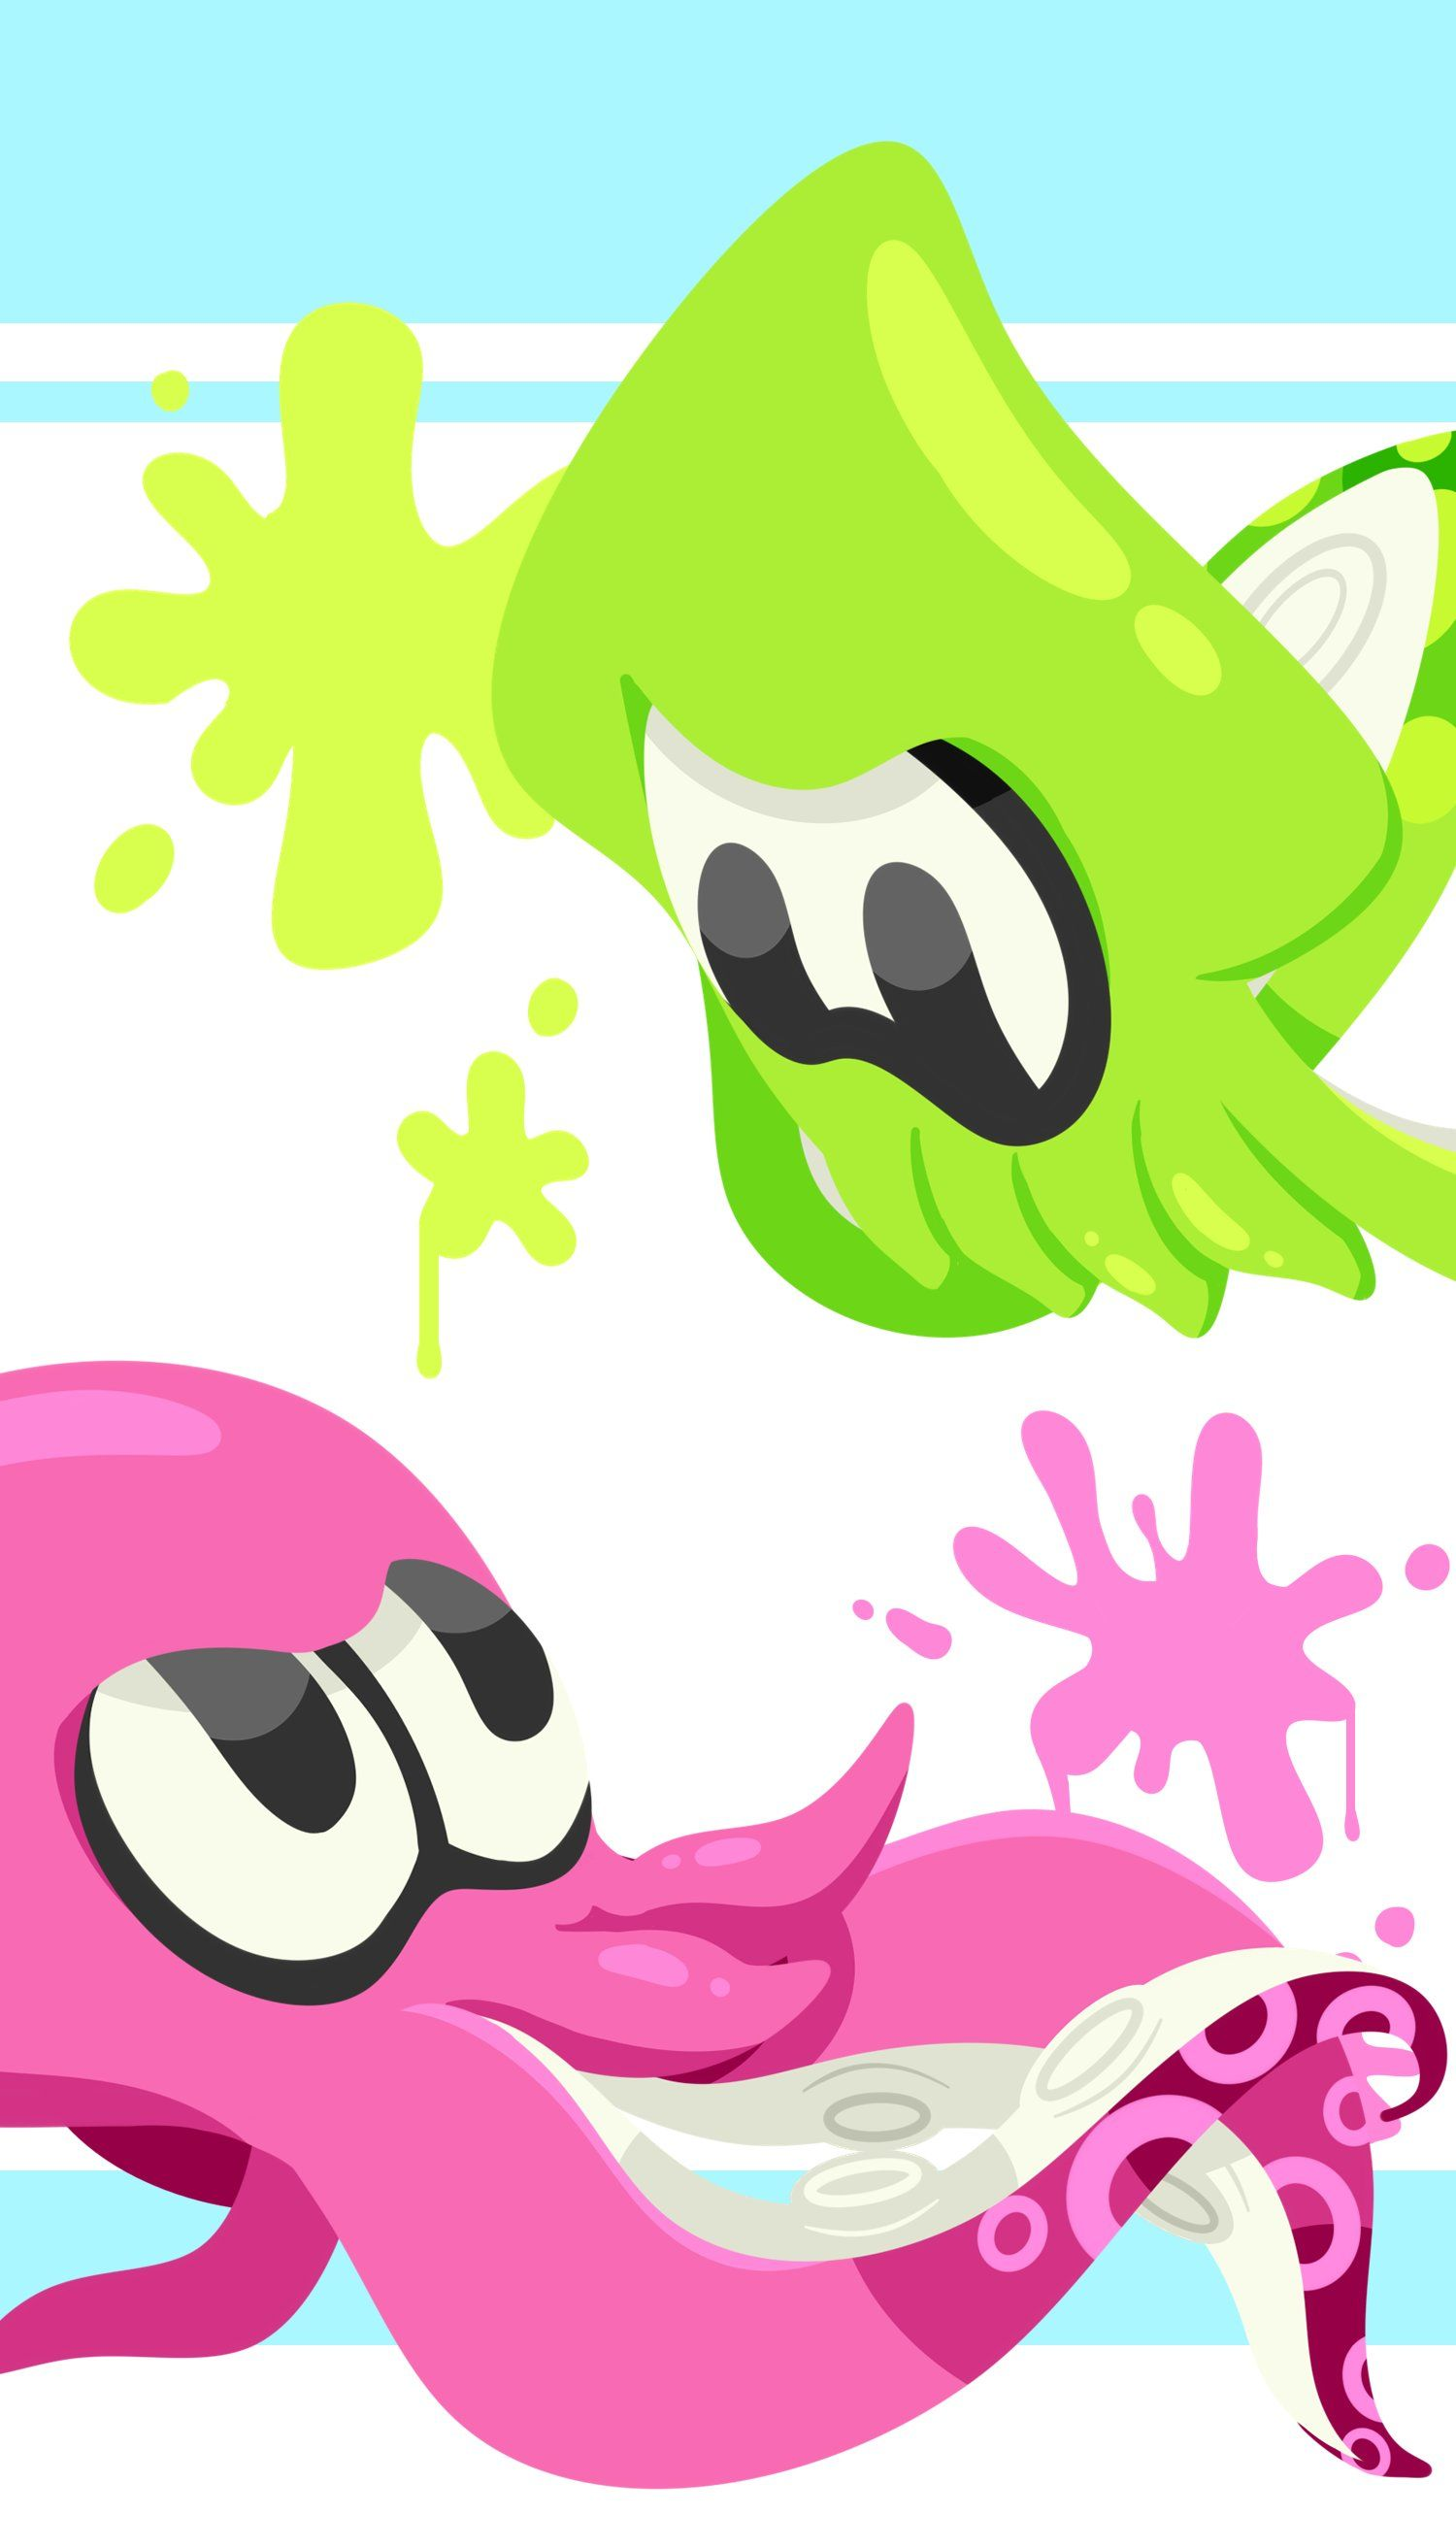 Splatoon 2 first anniversary and Squid vs Octo Splatfest are coming soon,